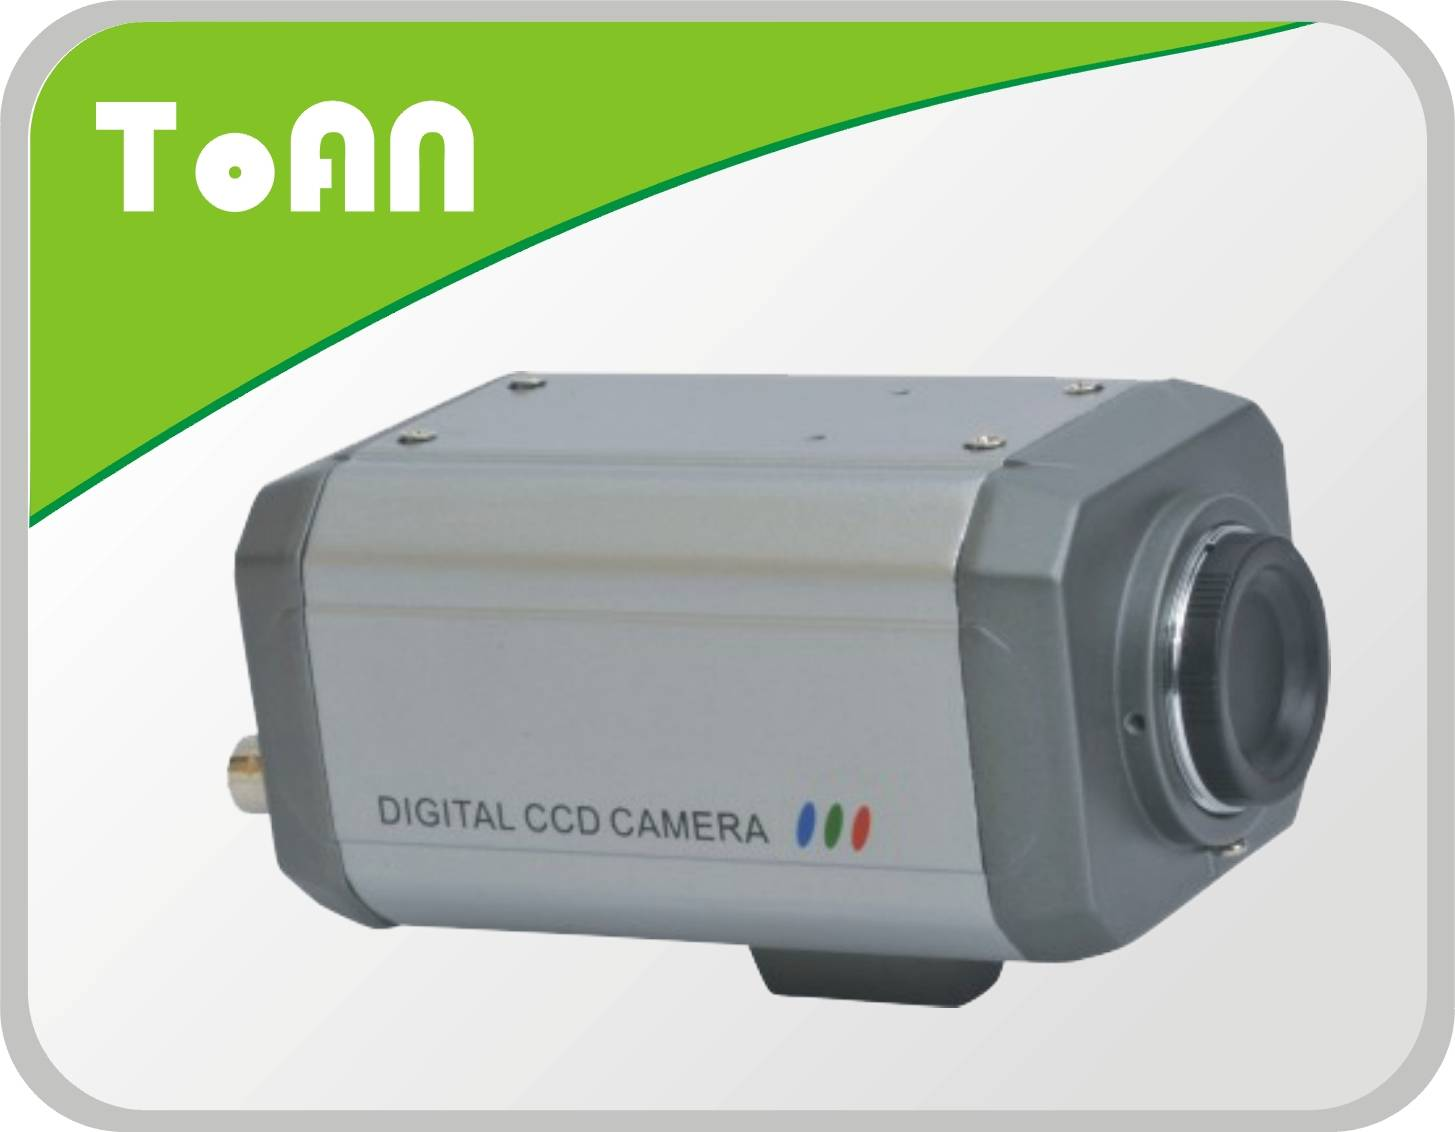 TOAN 2013 the cheapest security camera system Unique Design Suitable For Indoor/Outdoor ctv cameras